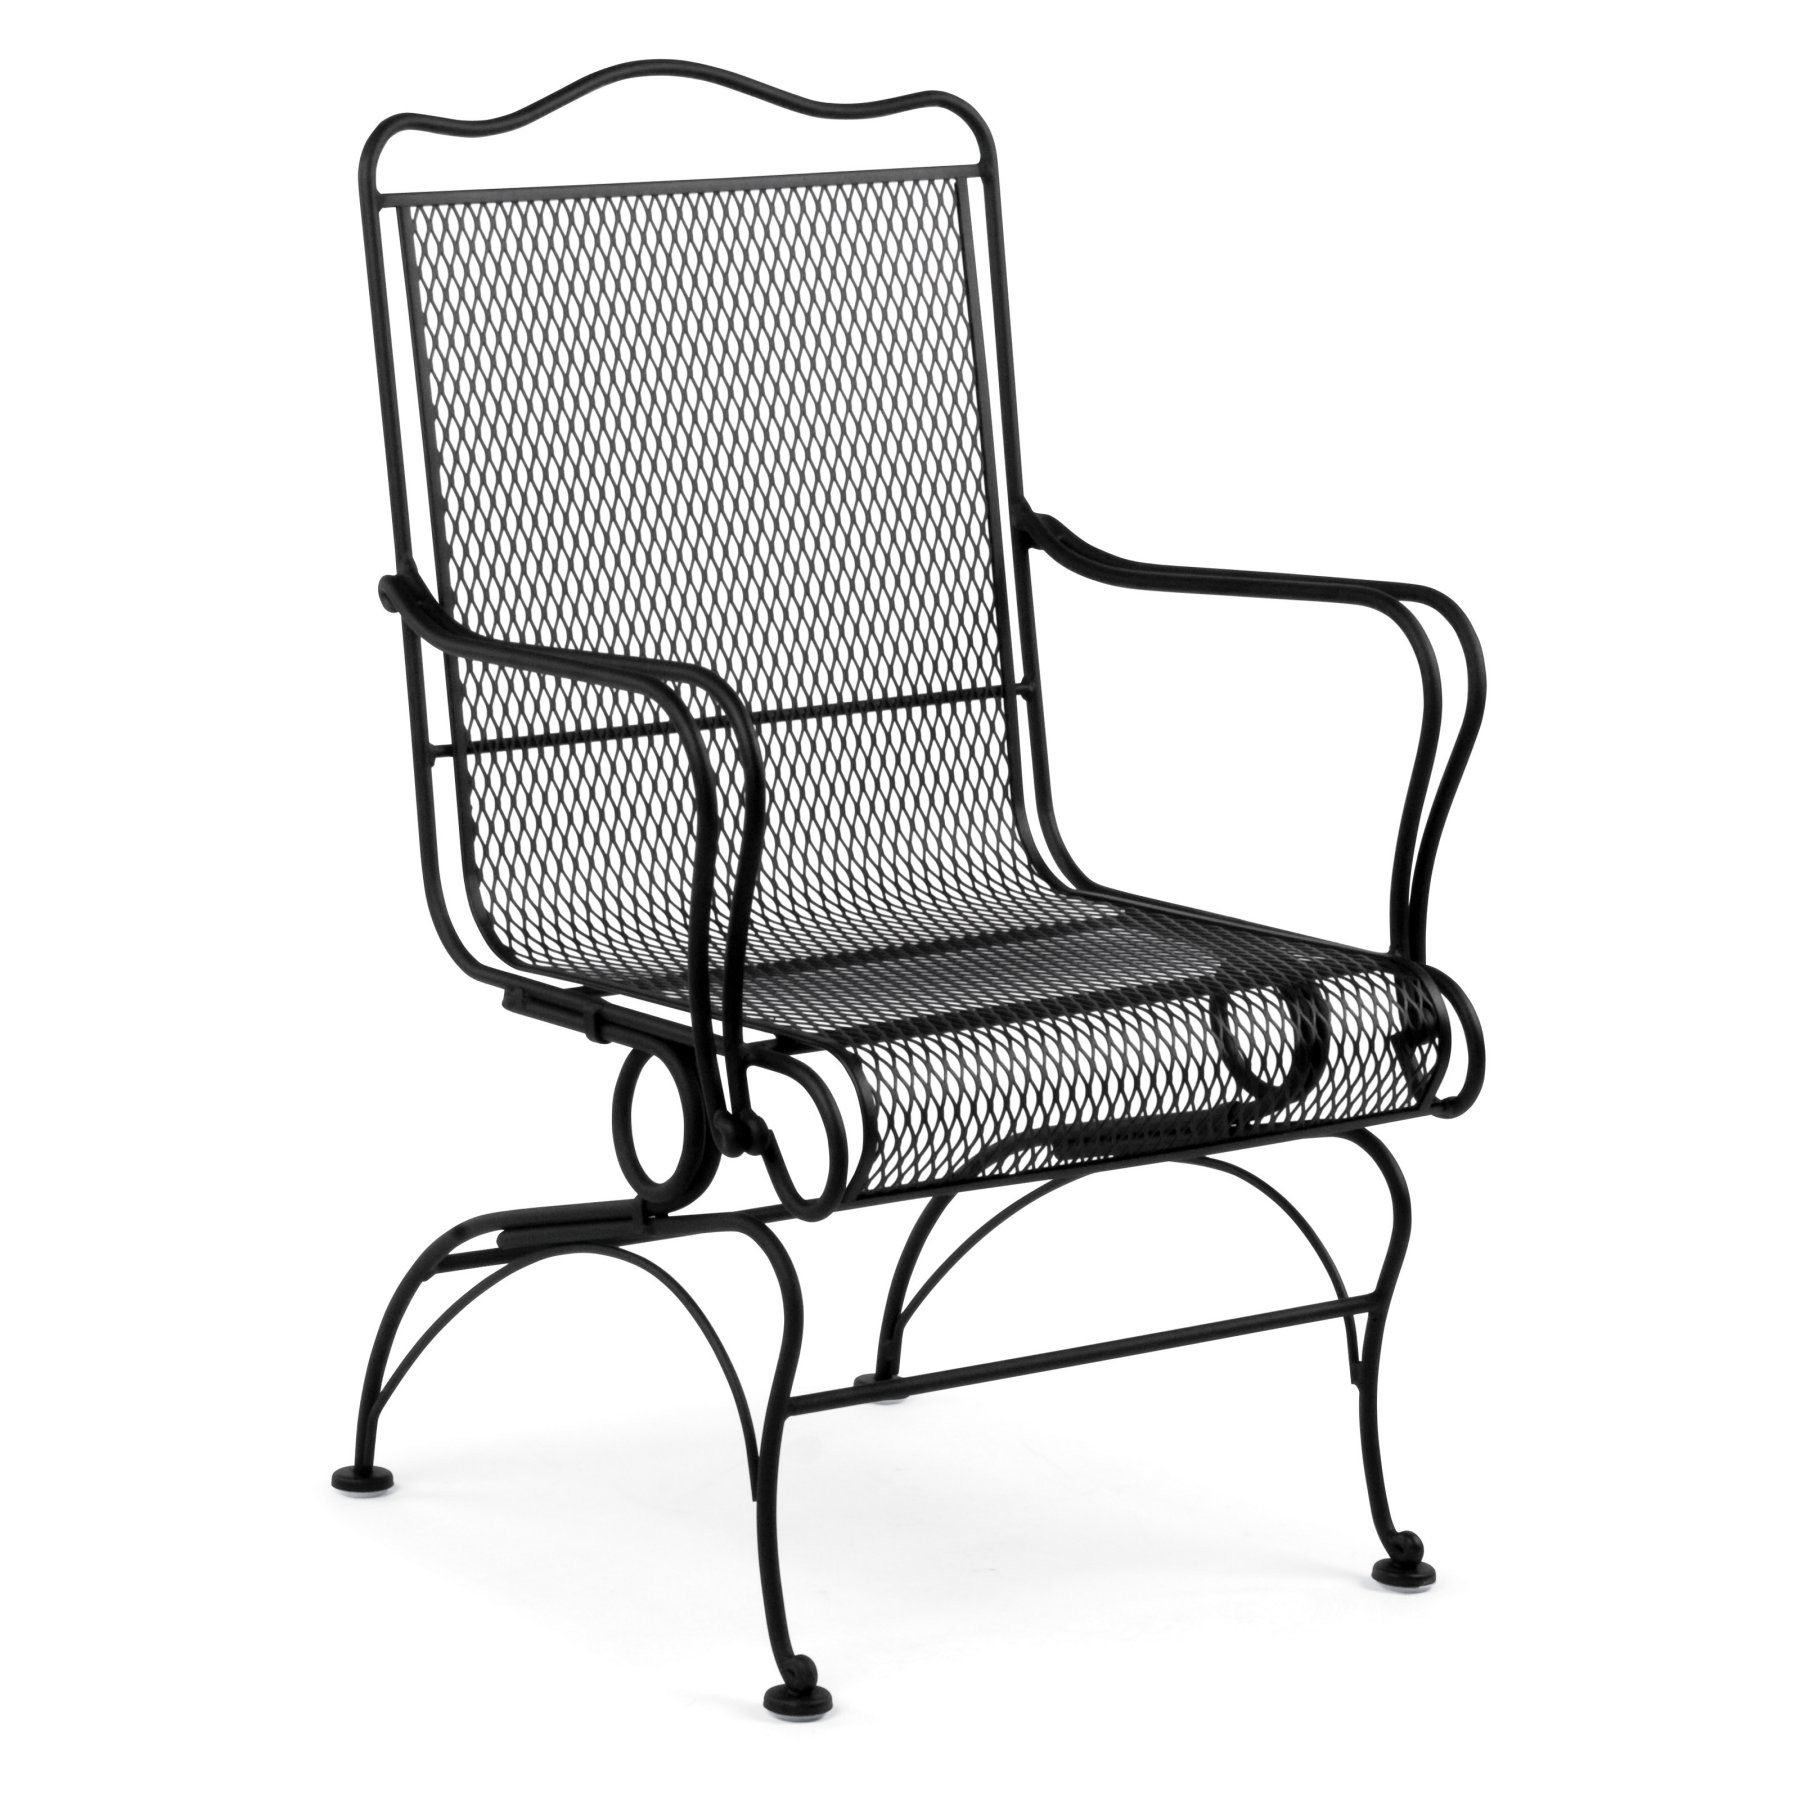 Outdoor Woodard Tucson High Back Coil Spring Dining Chair 1g0066